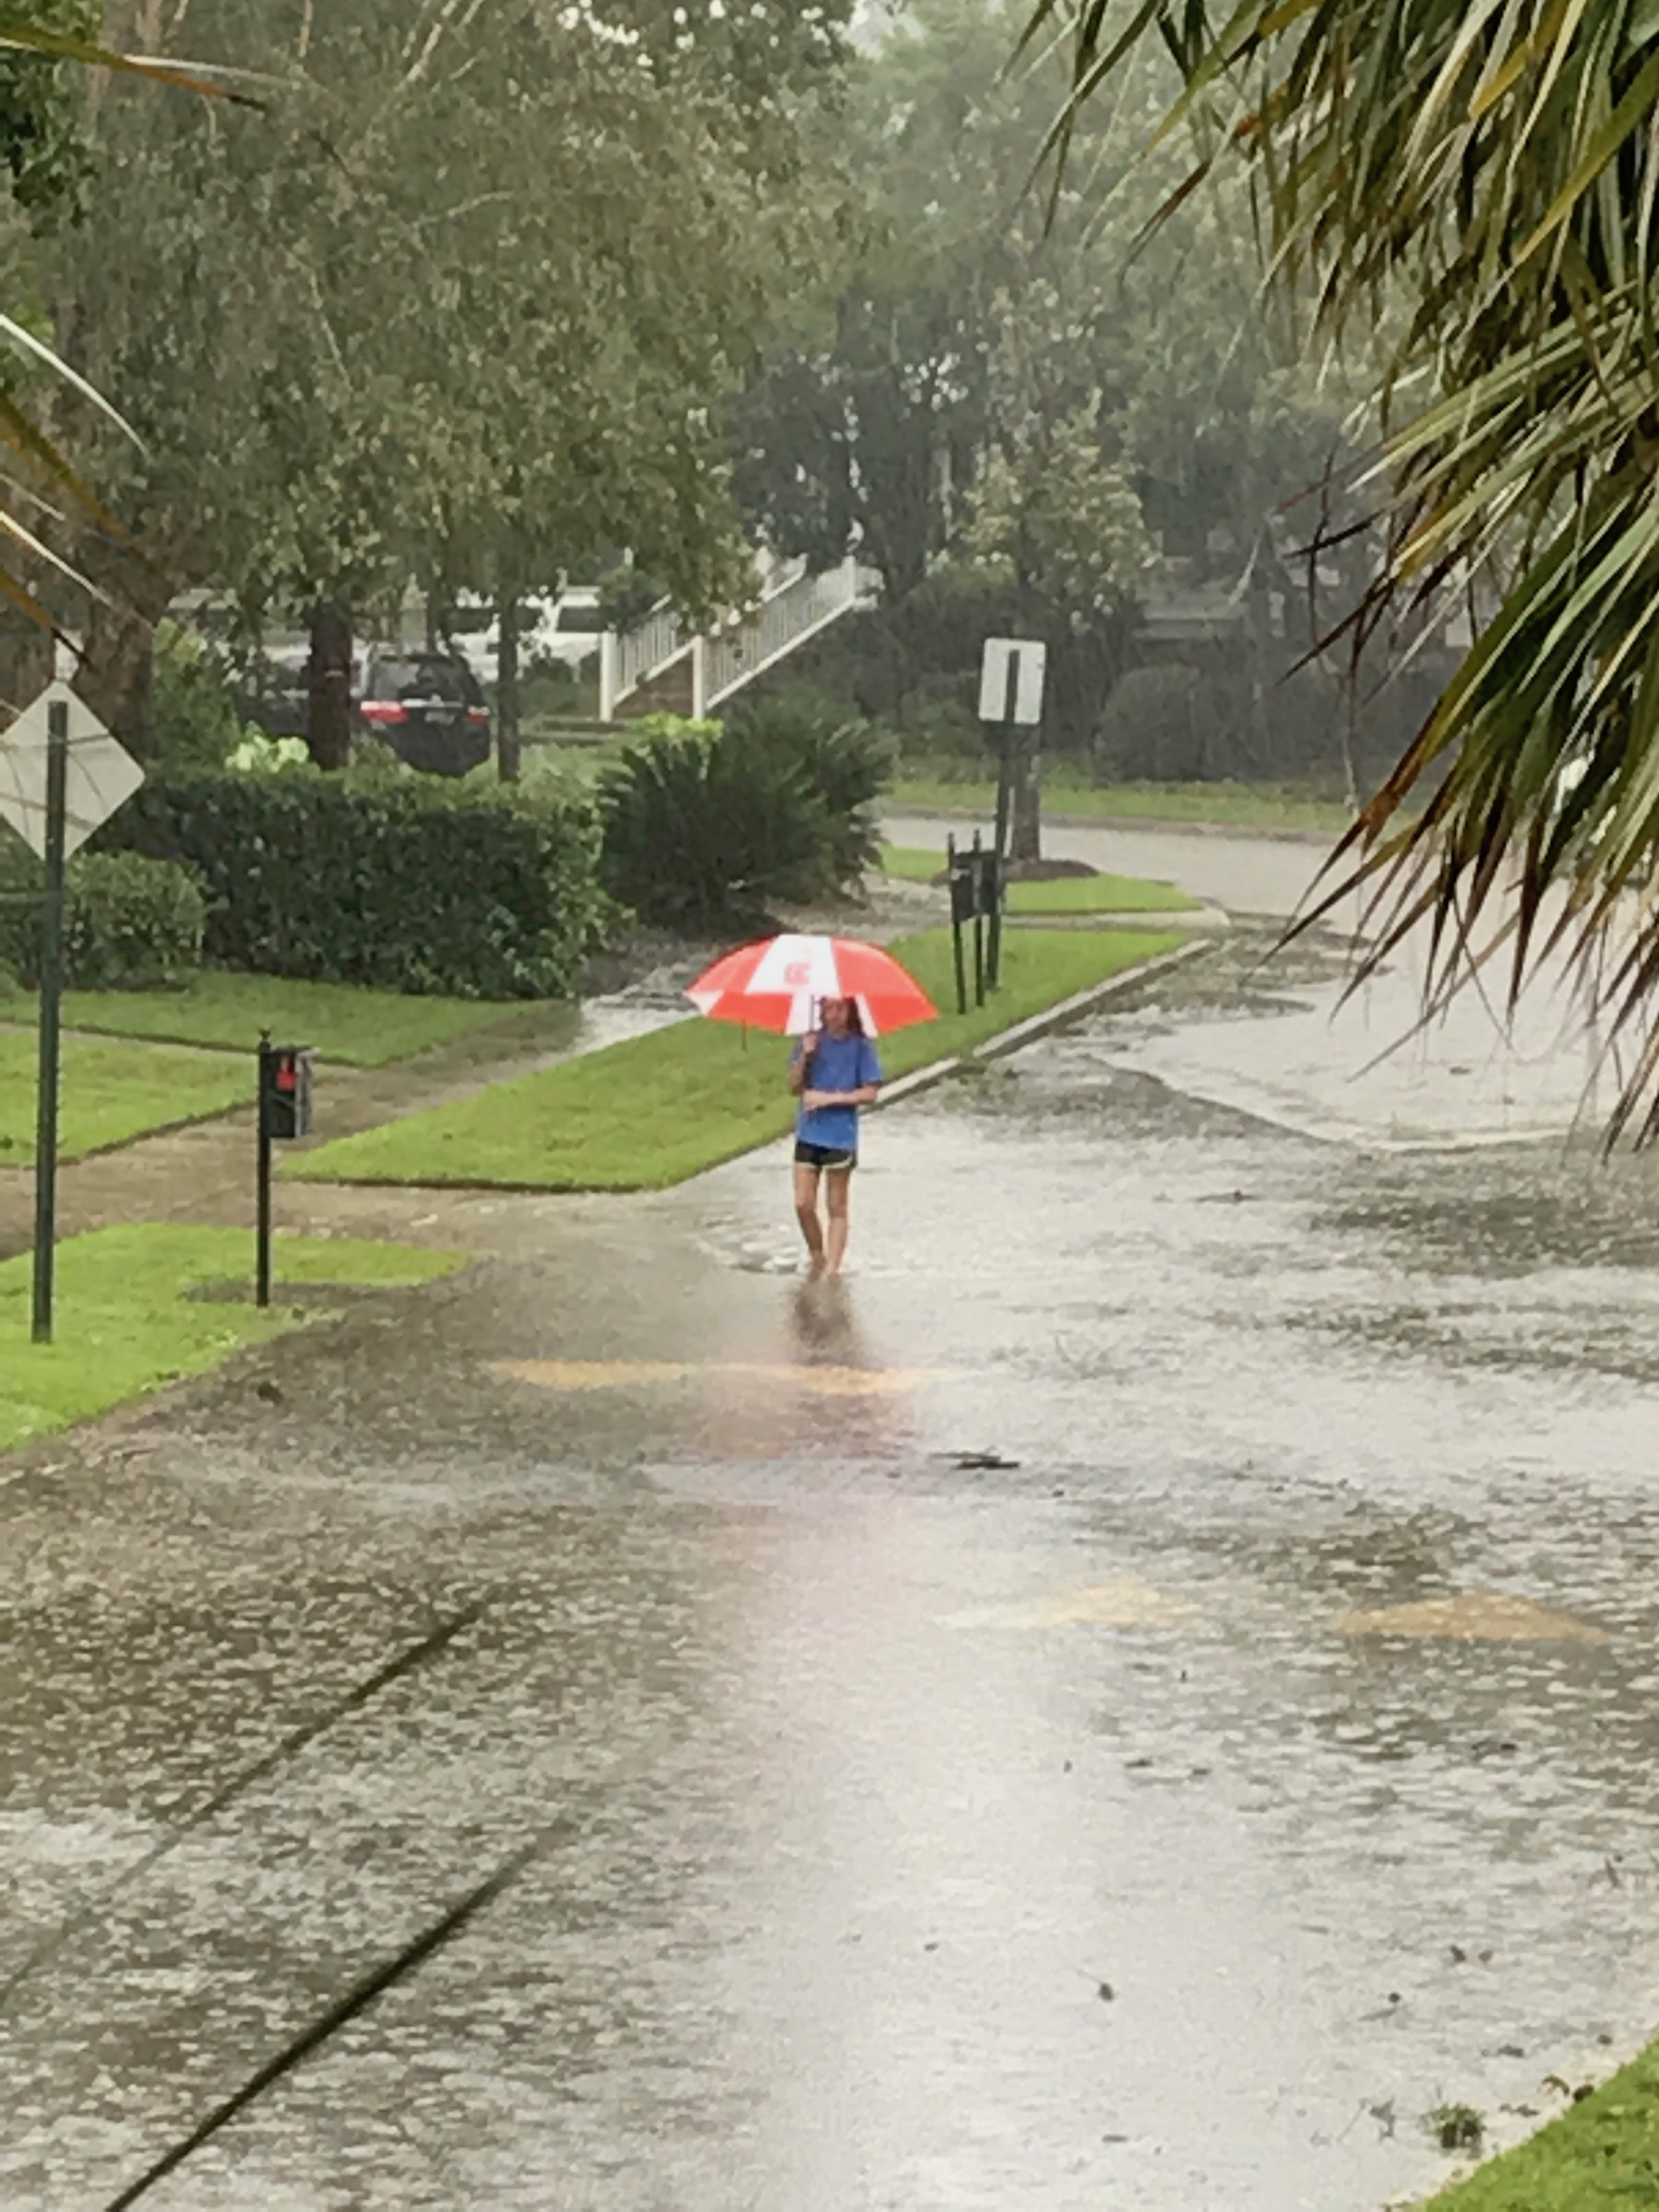 A young resident walks along Barfield Street during the storm.